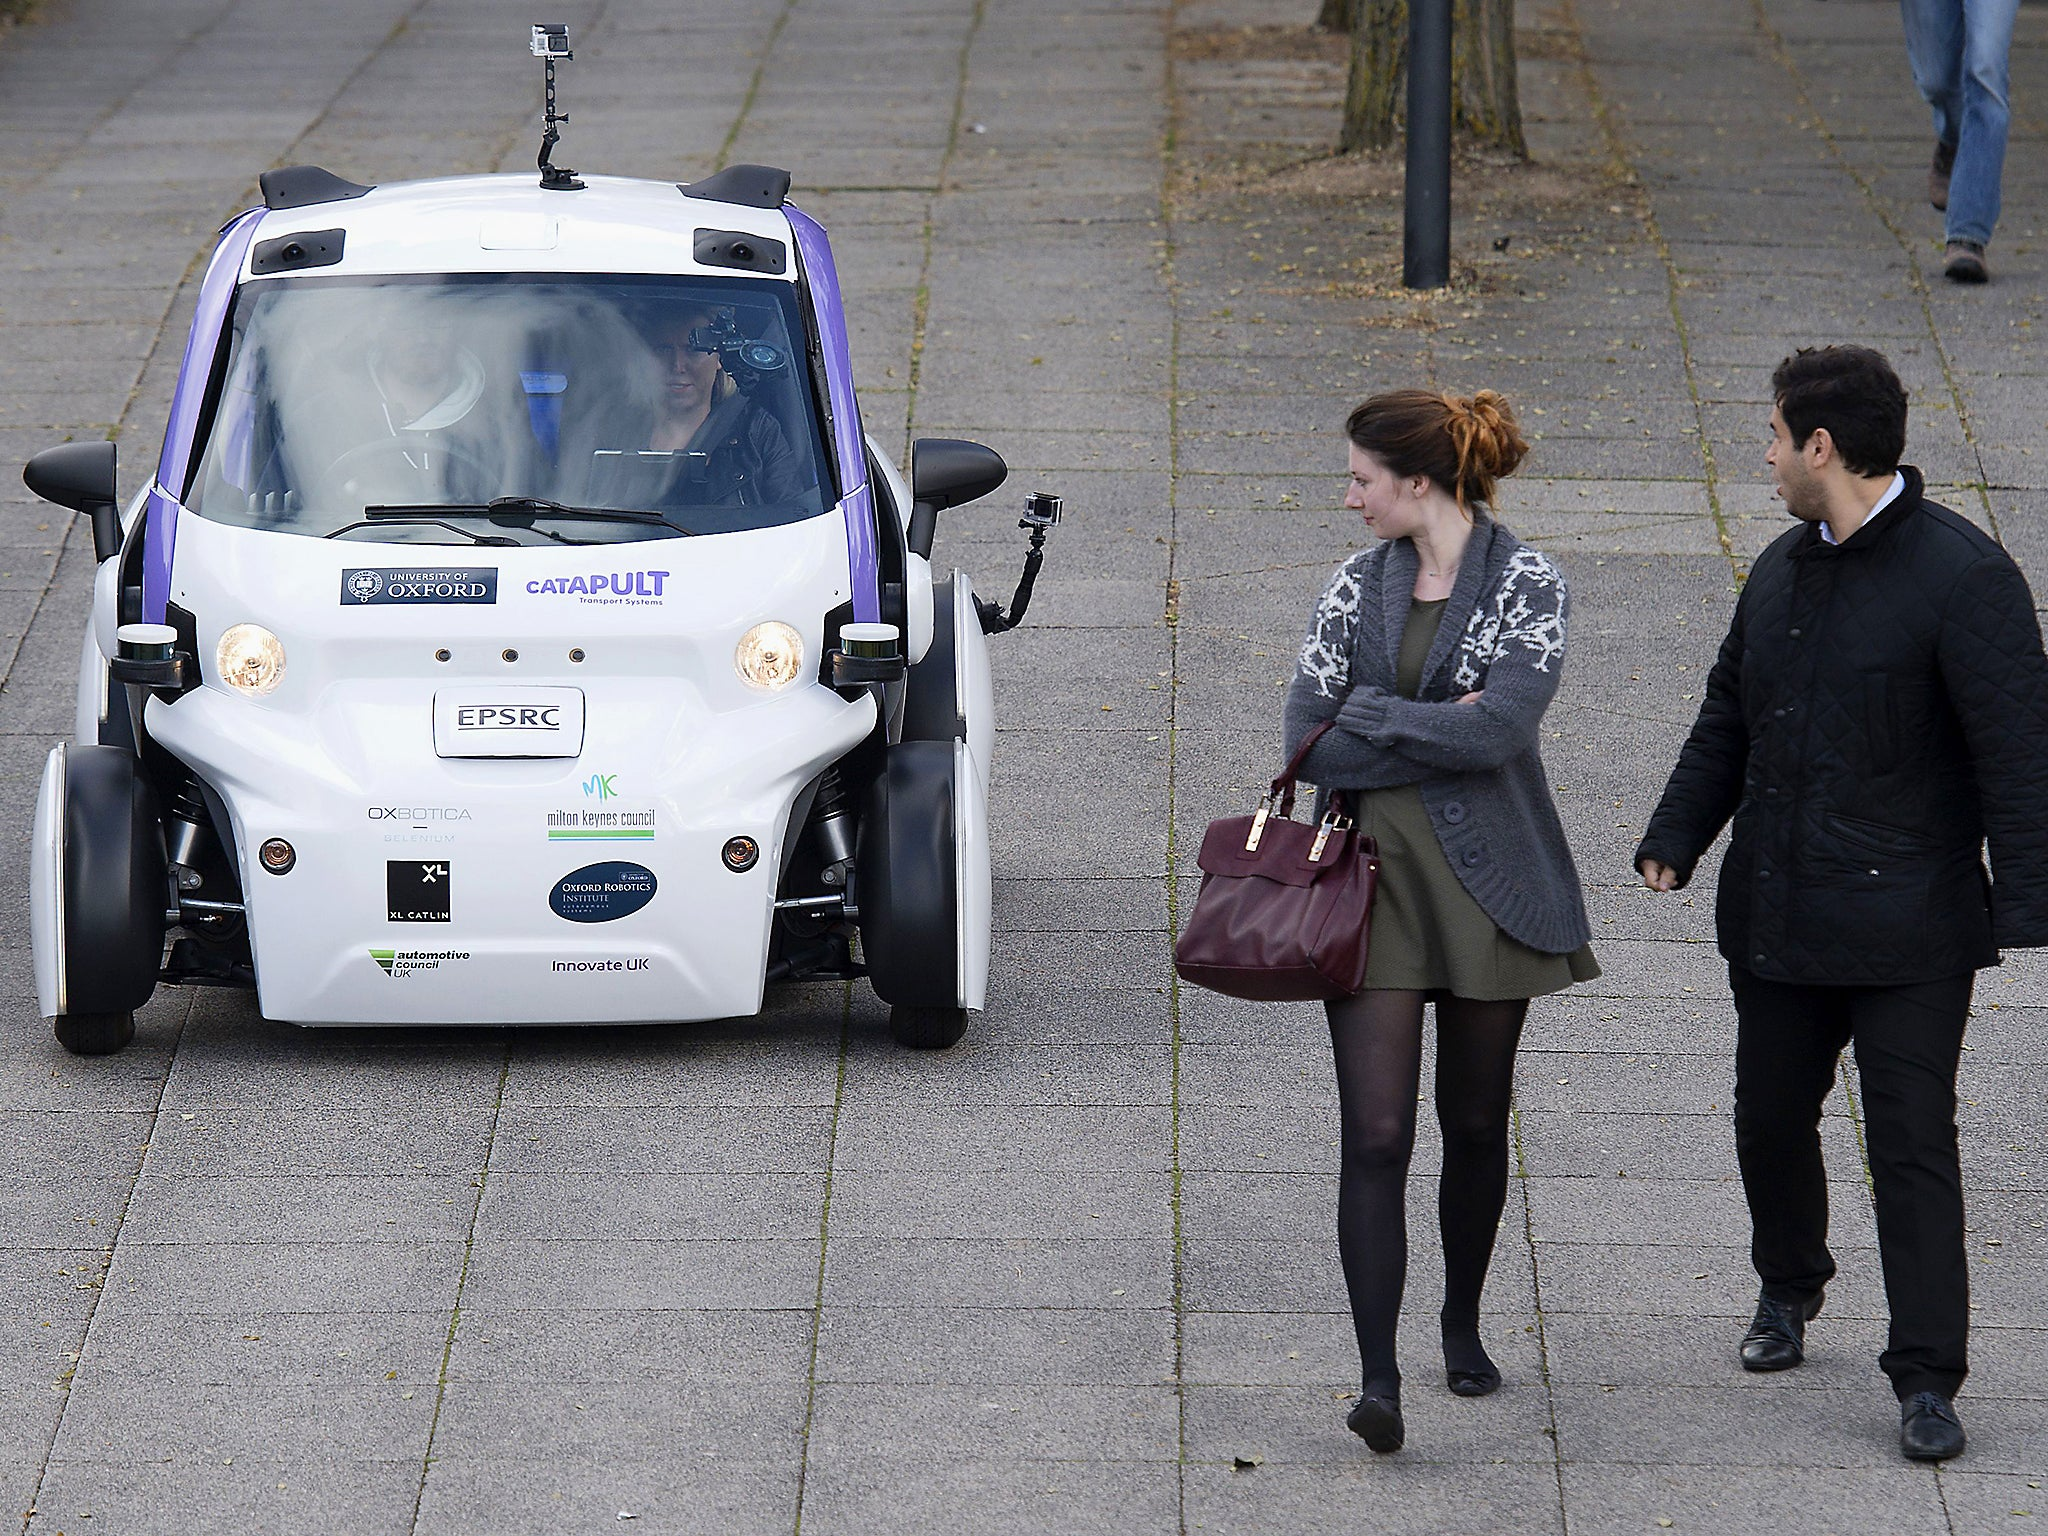 Self-driving taxis to be launched in London by 2021, Addison Lee says